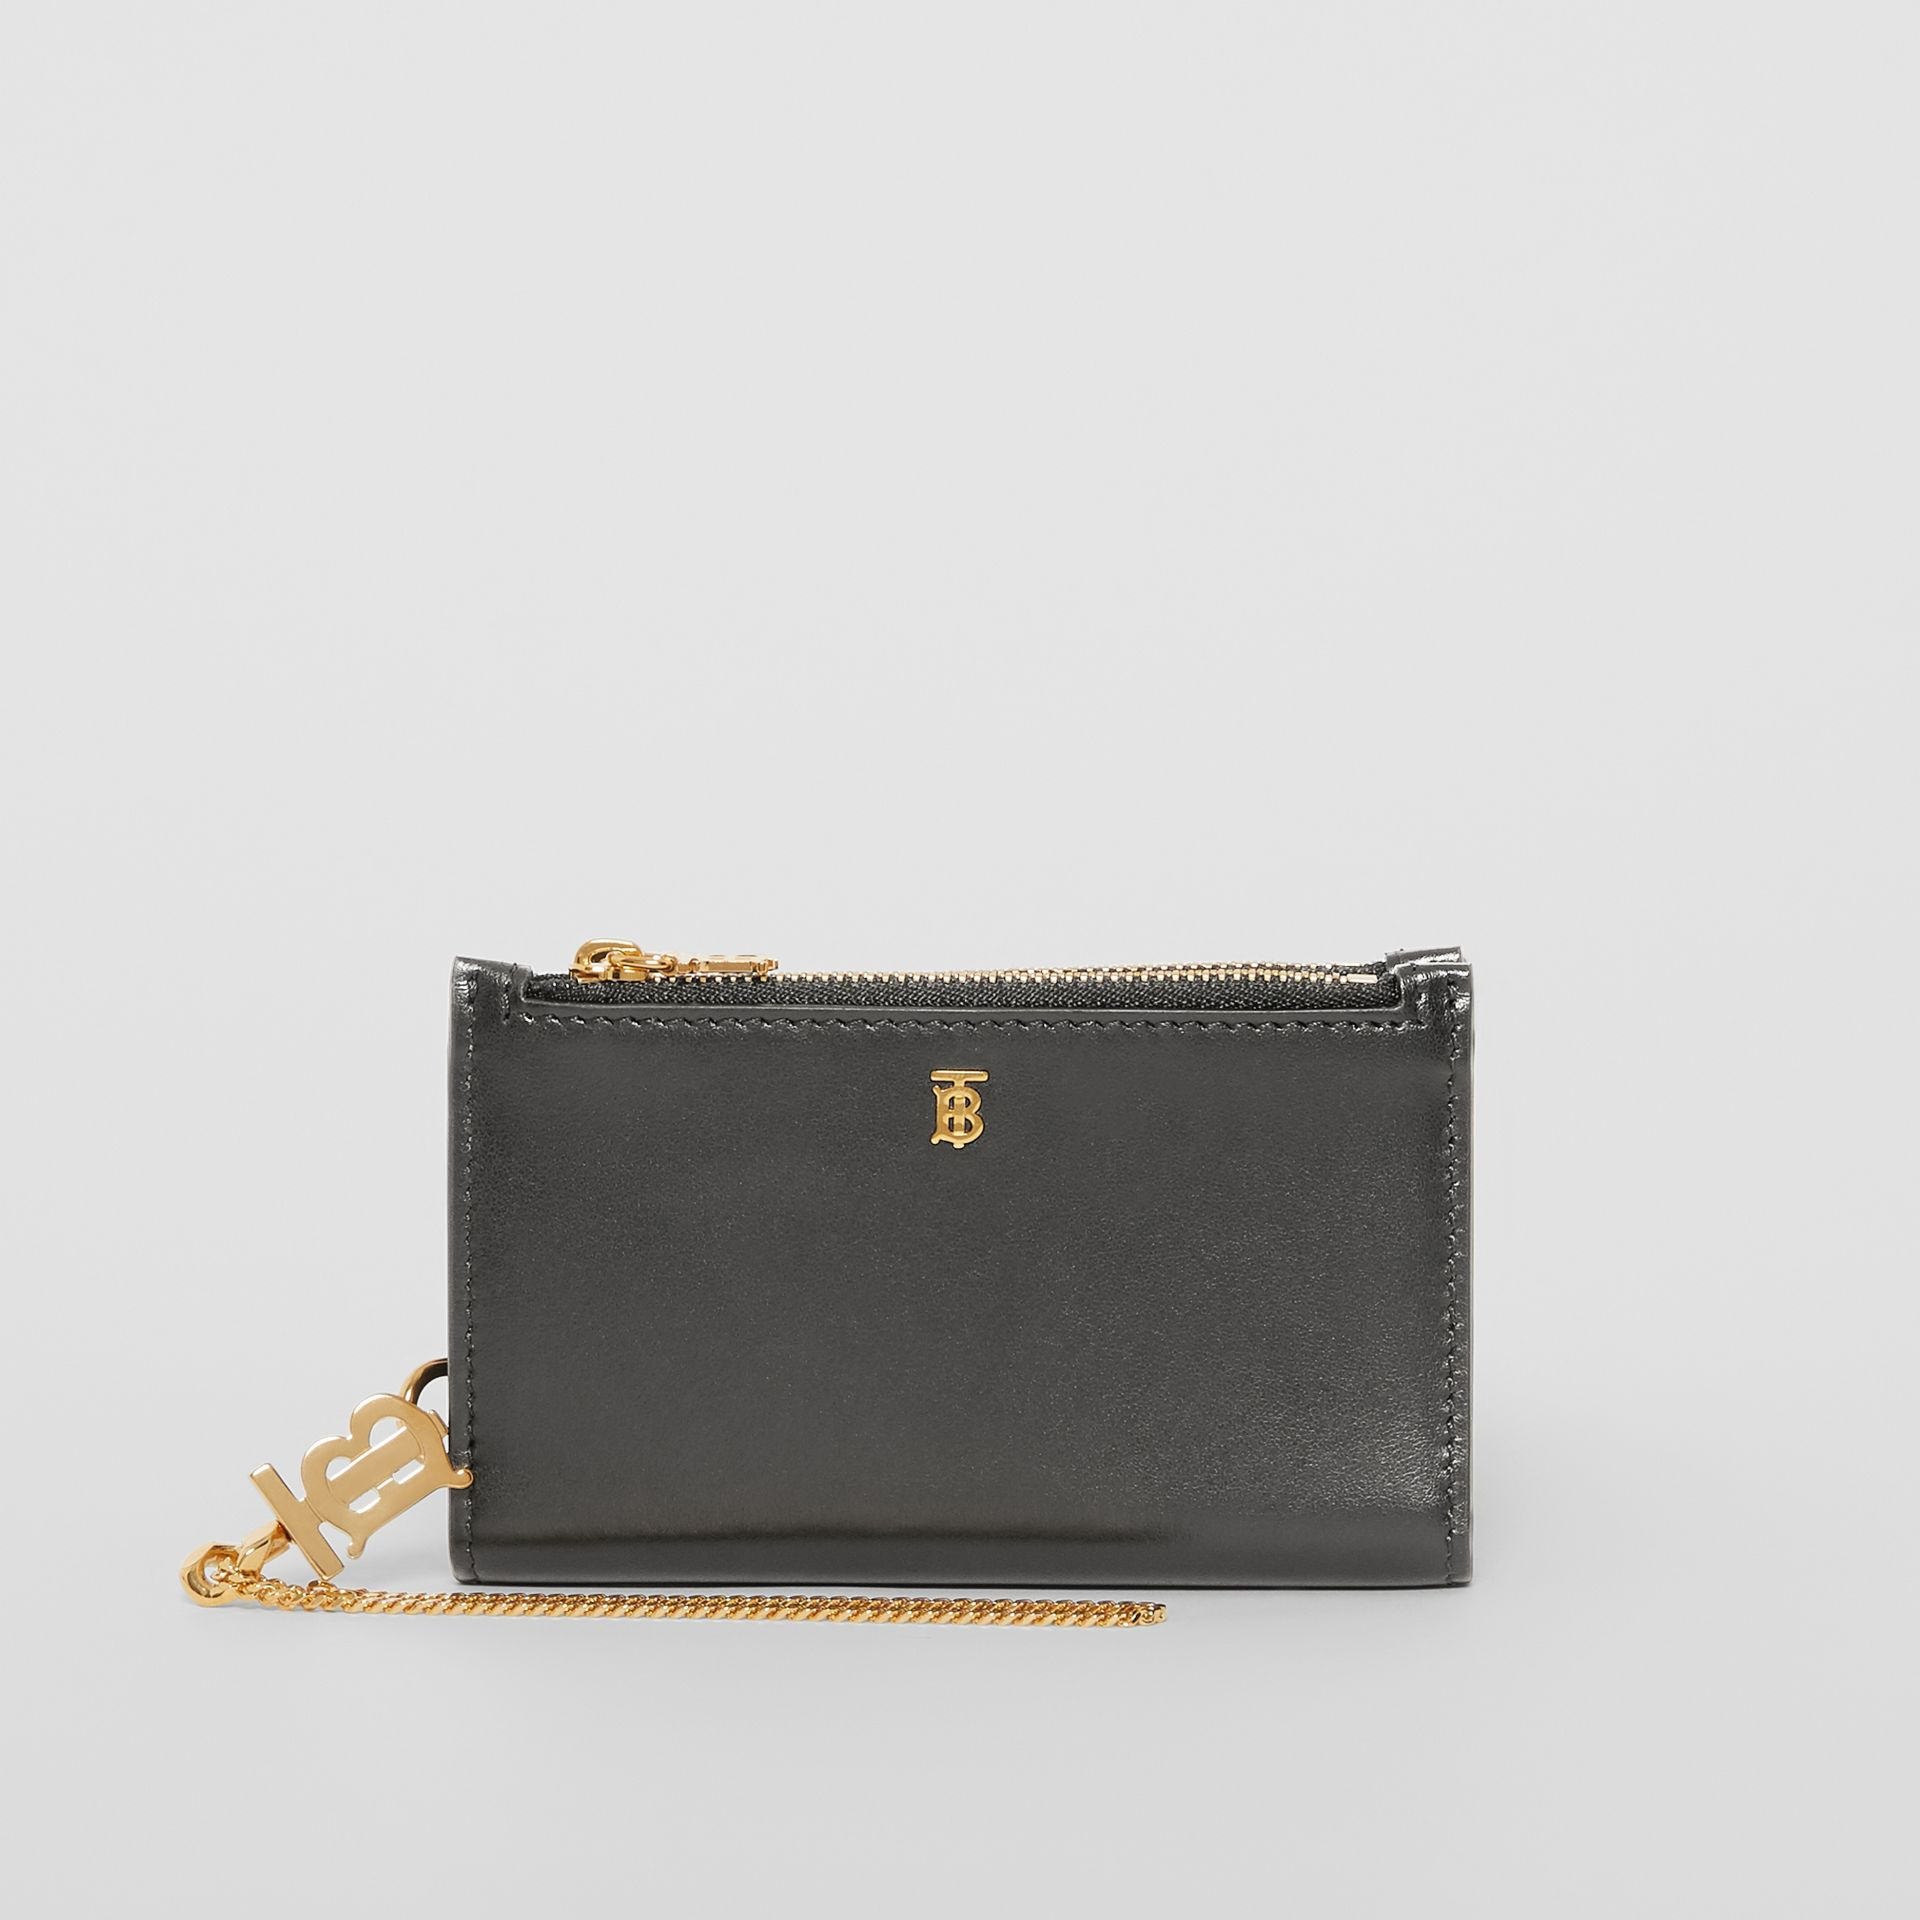 Monogram Motif Leather Wallet with Detachable Strap in Black - Women | Burberry - gallery image 6